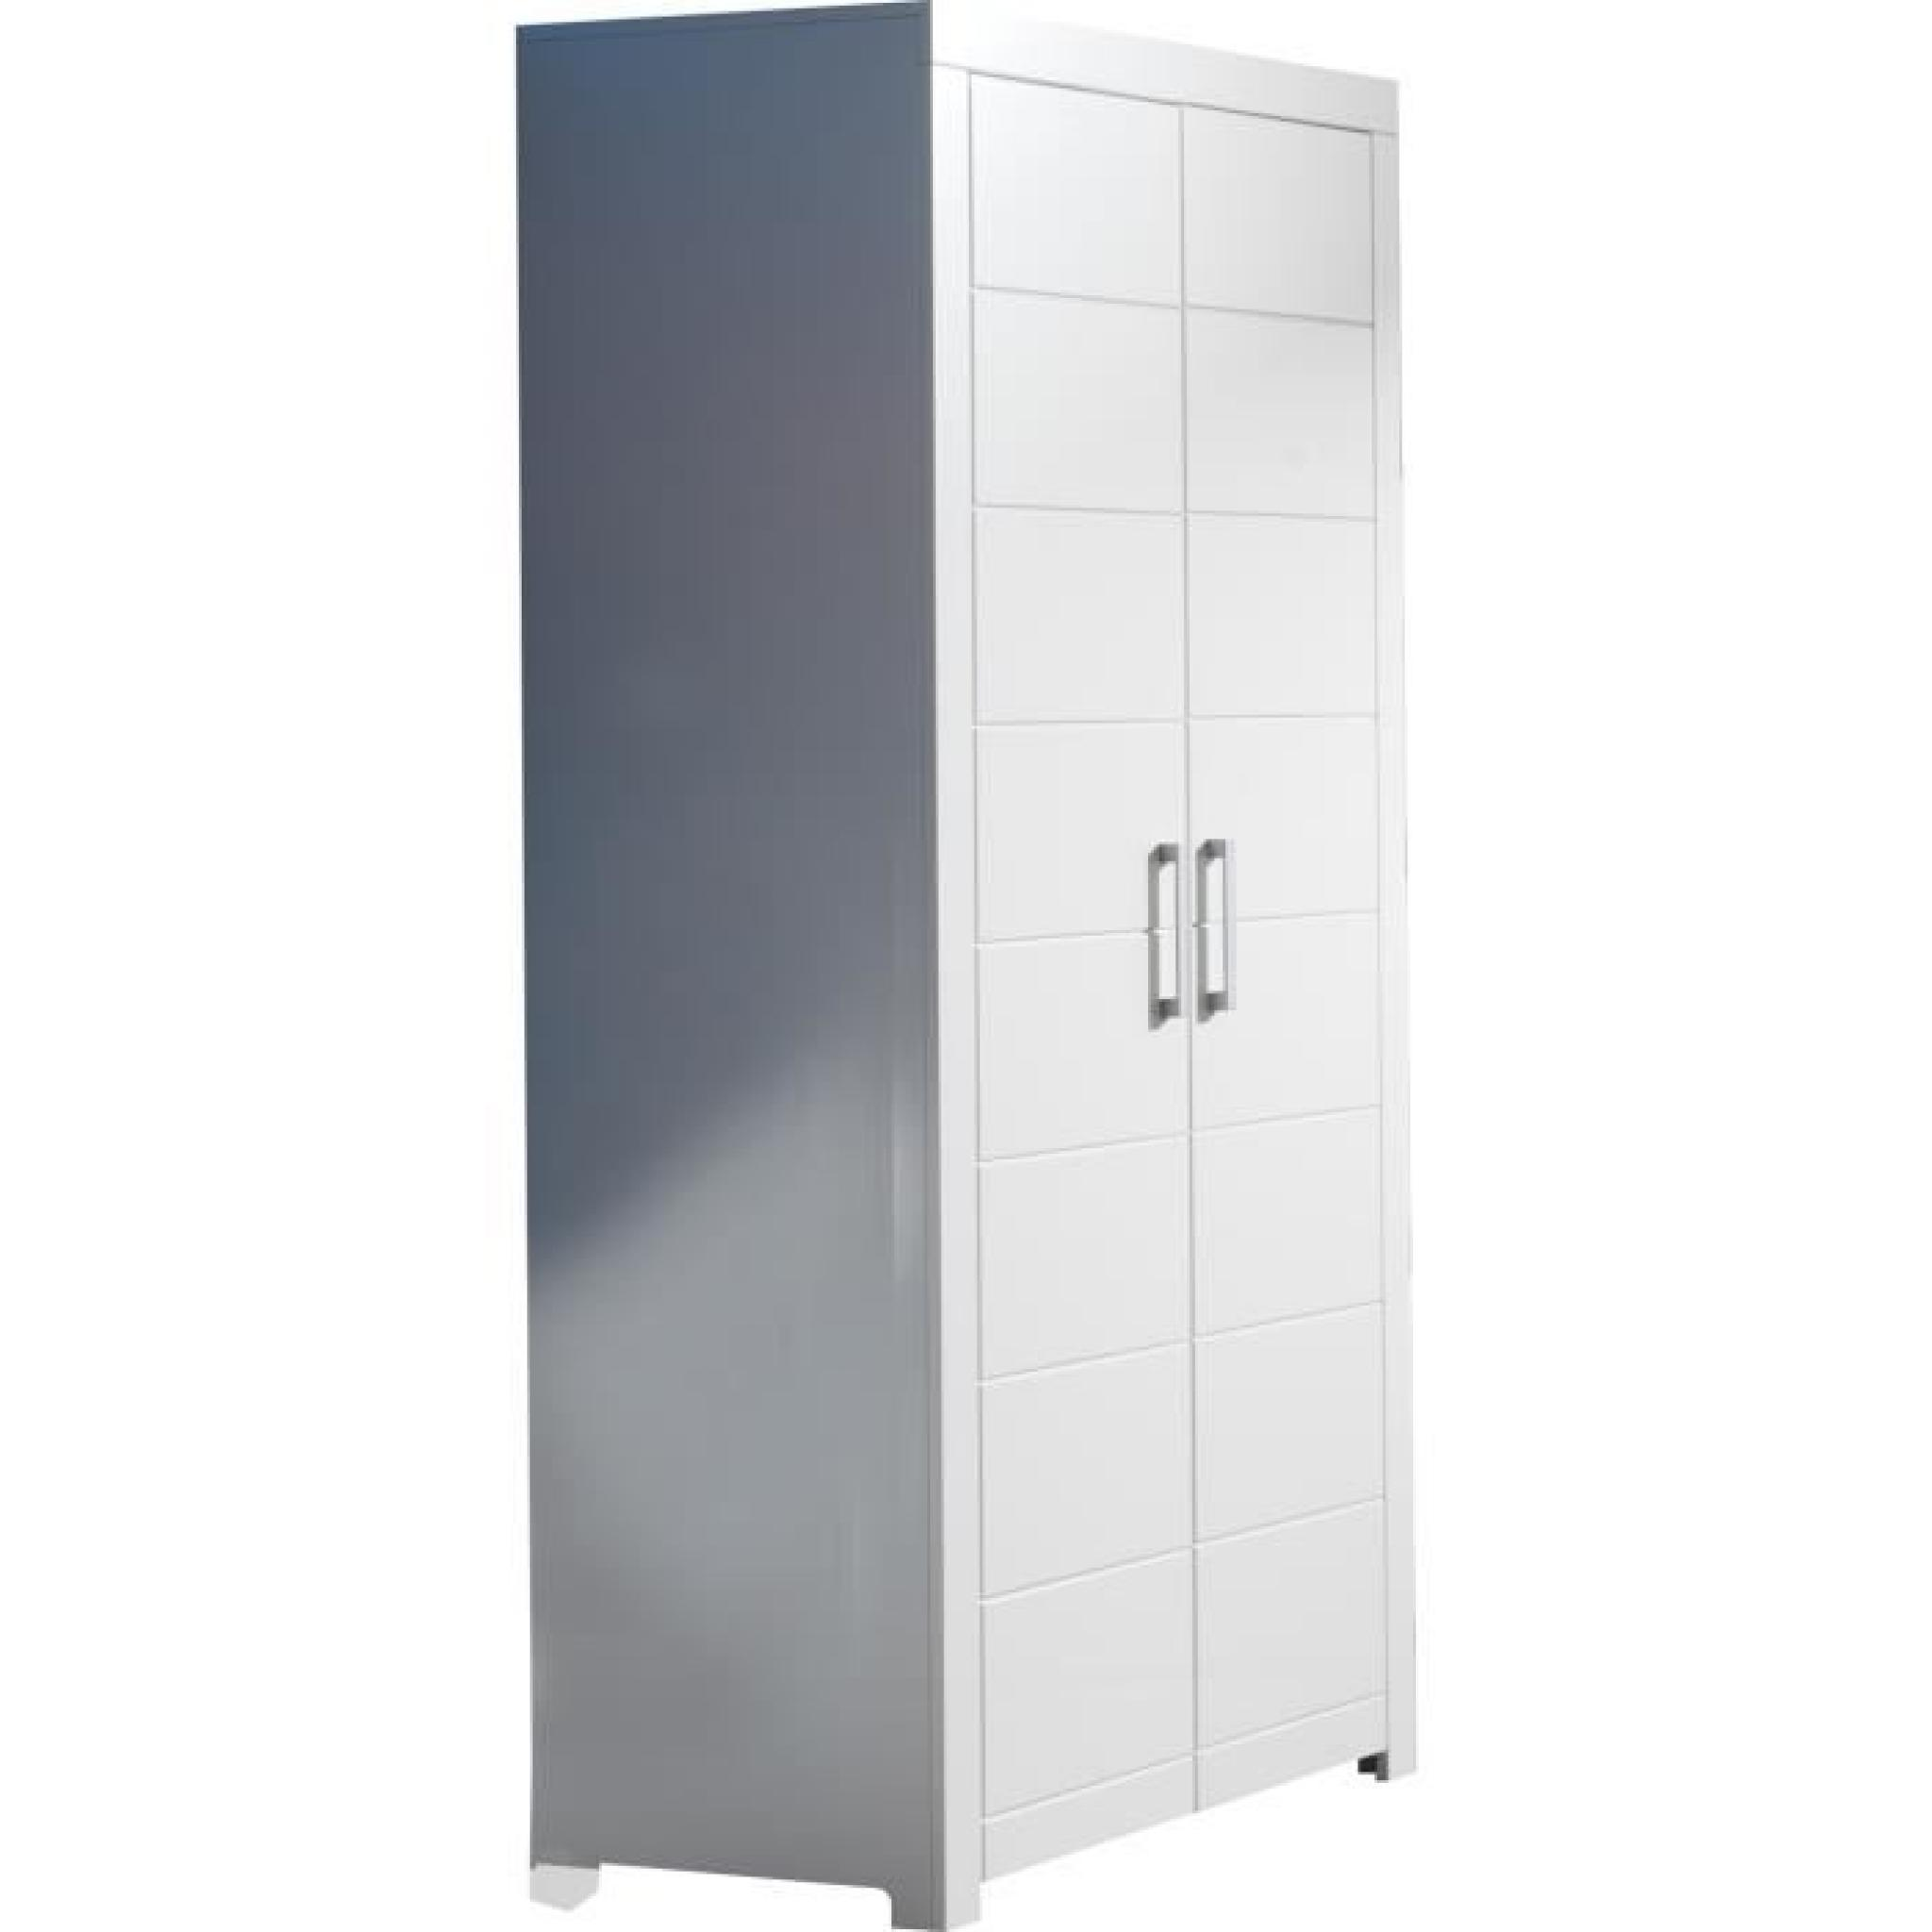 garde robe blanche 2 portes achat vente armoire de. Black Bedroom Furniture Sets. Home Design Ideas